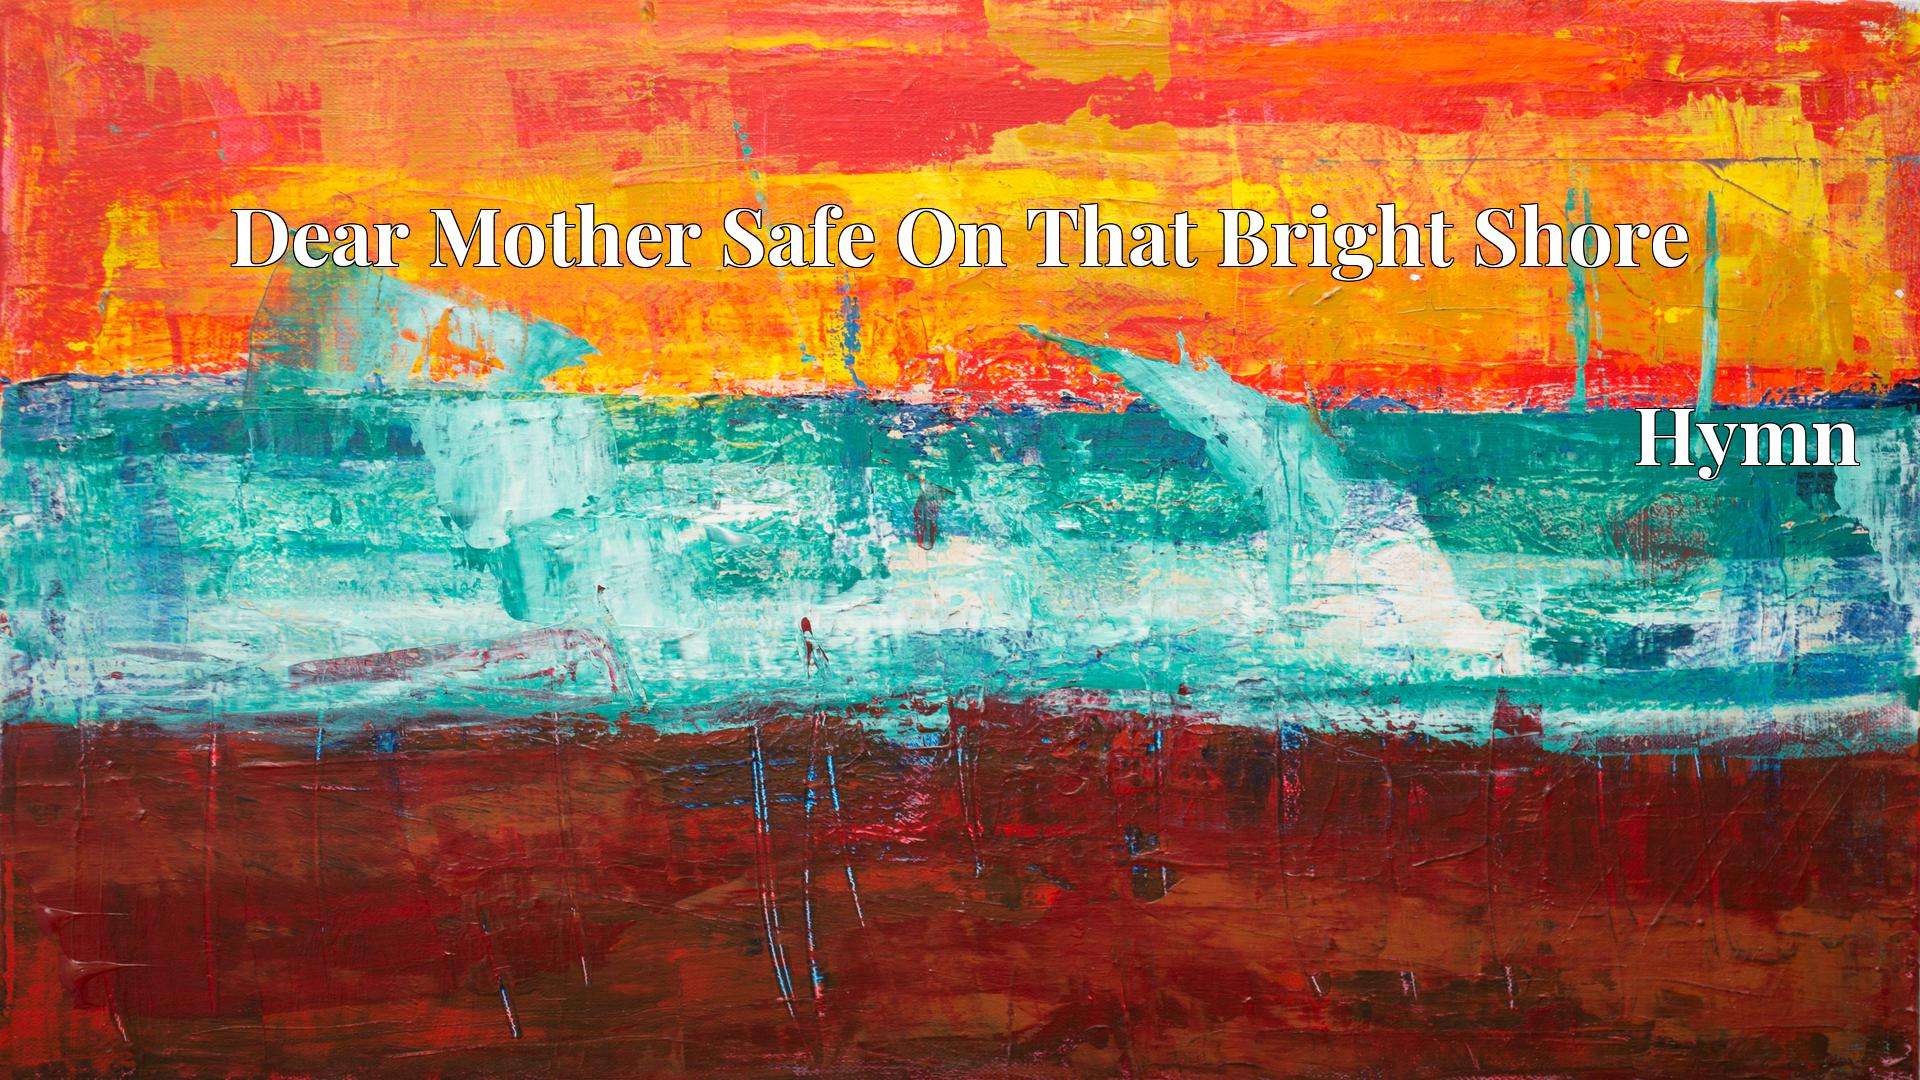 Dear Mother Safe On That Bright Shore - Hymn